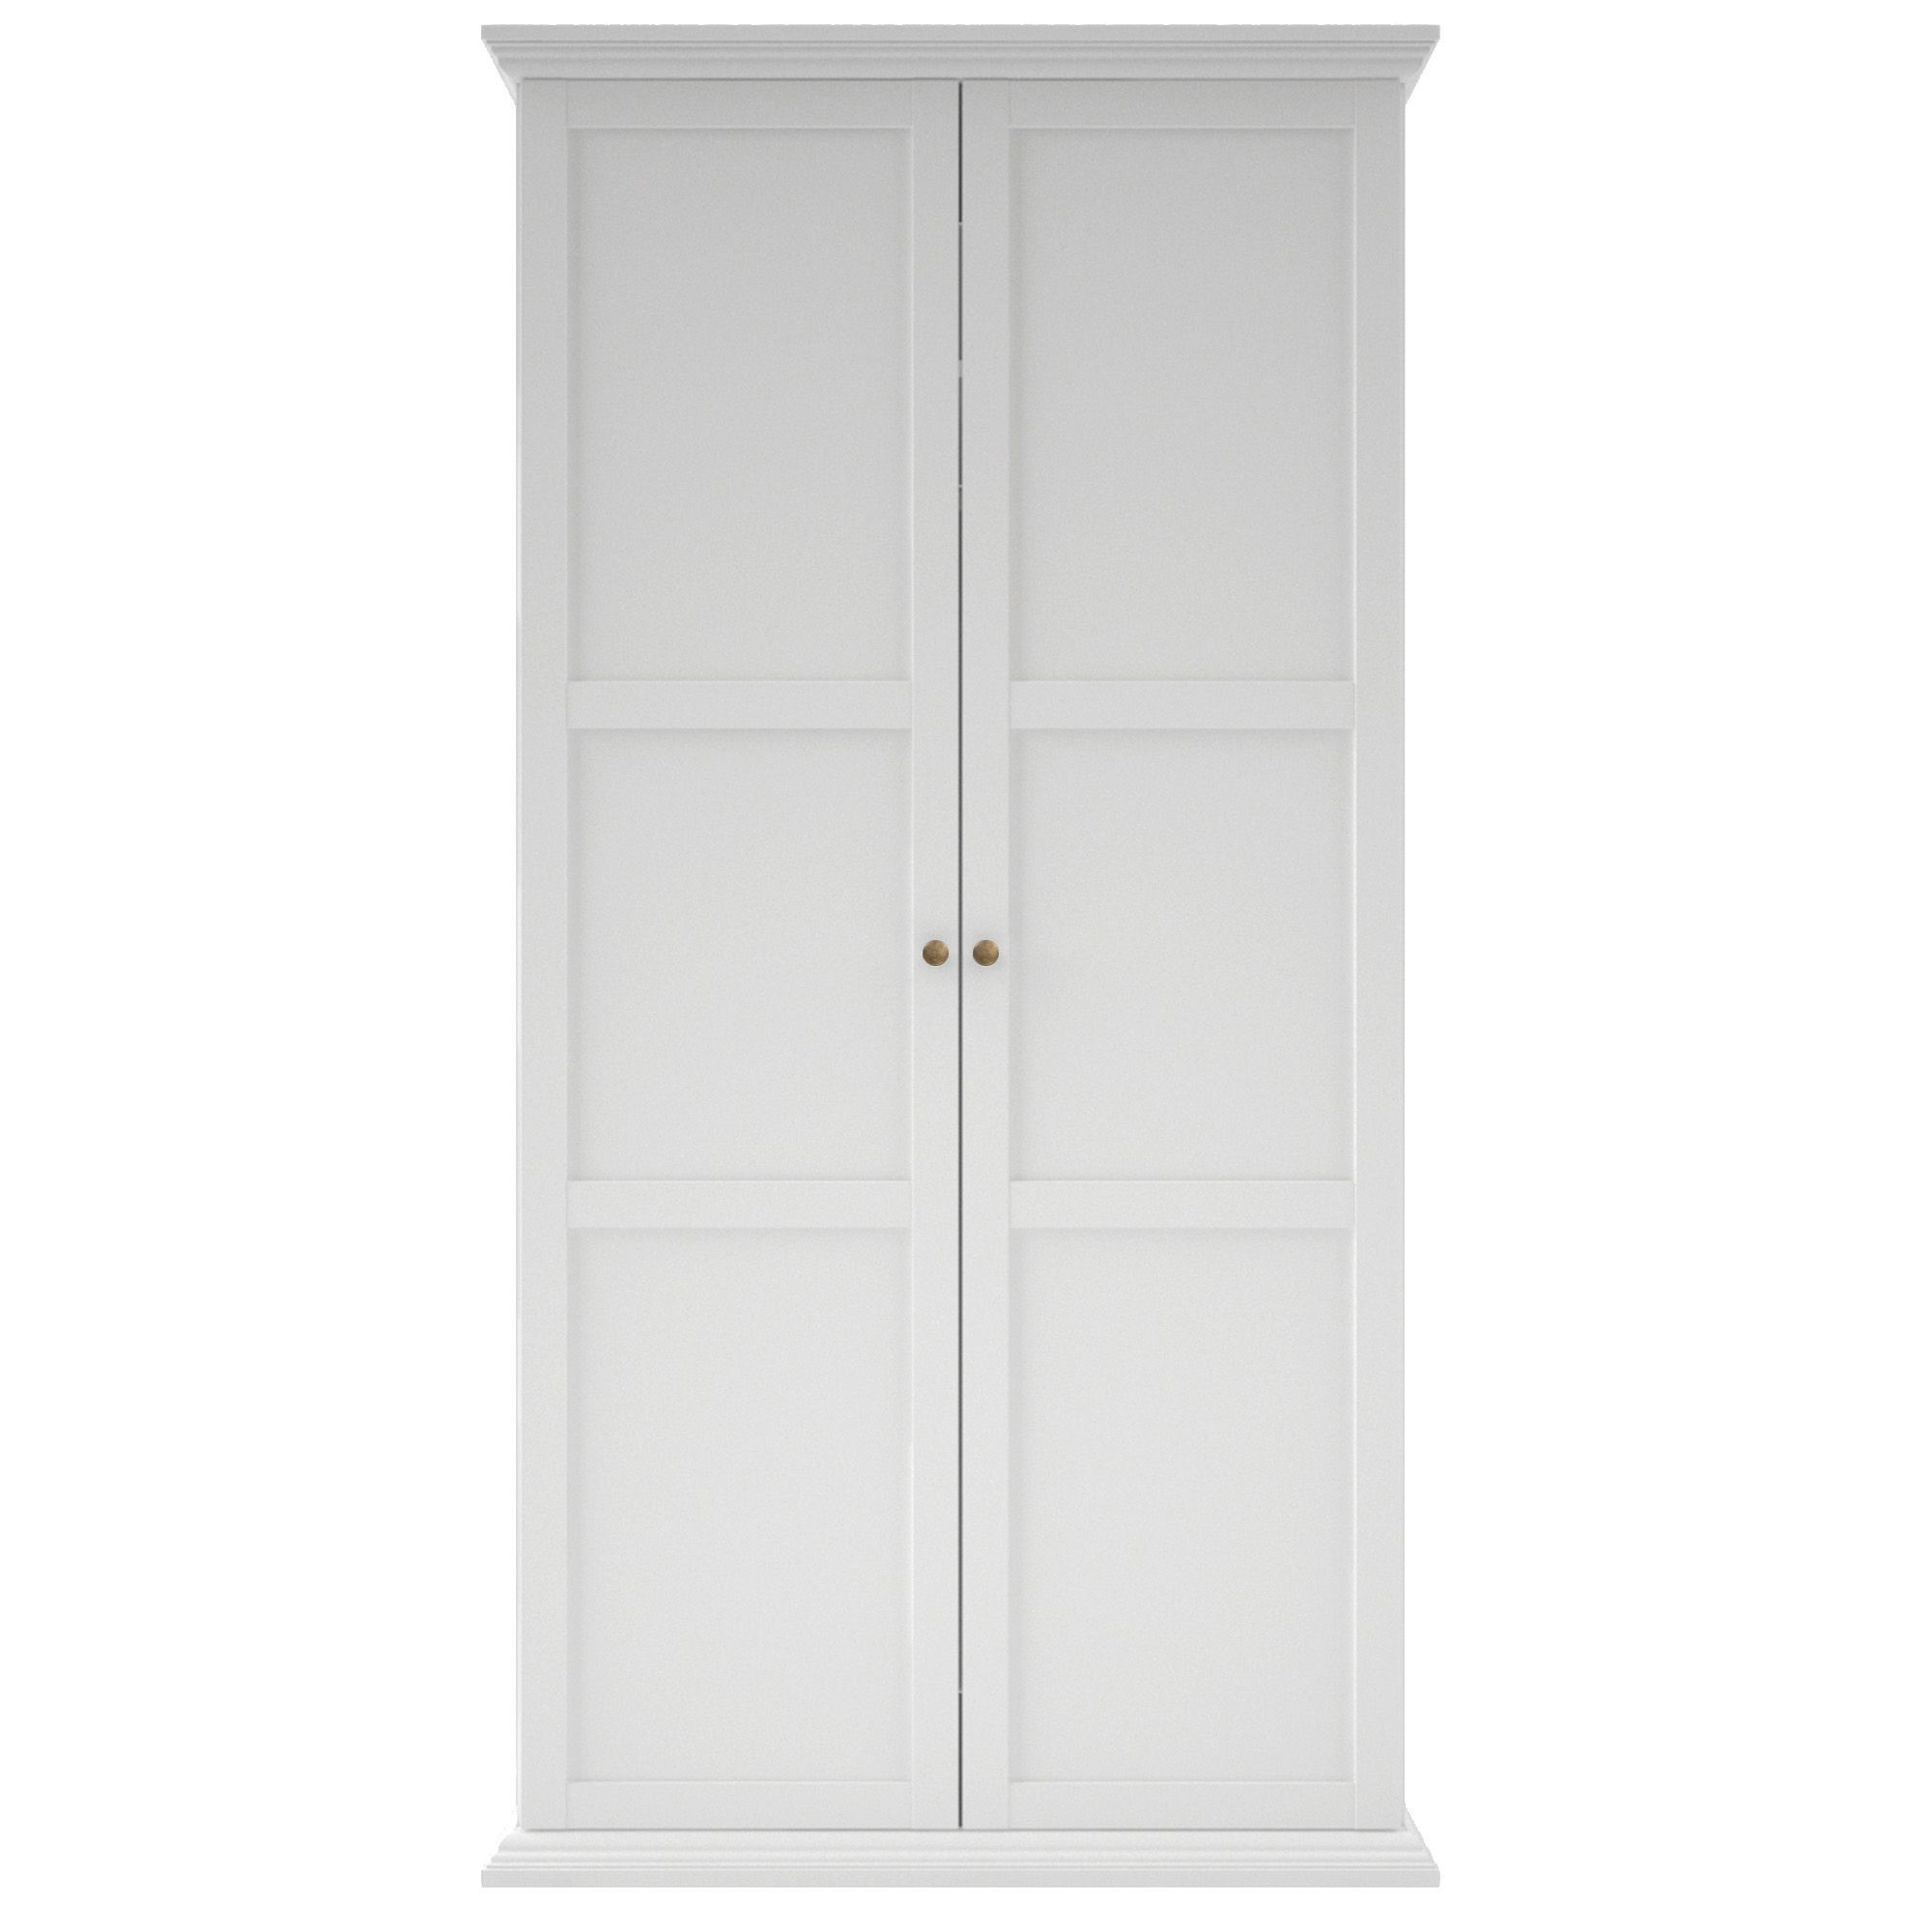 Elegant White Two Door Wardrobe – Badotcom Throughout Well Known Two Door White Wardrobes (View 2 of 15)